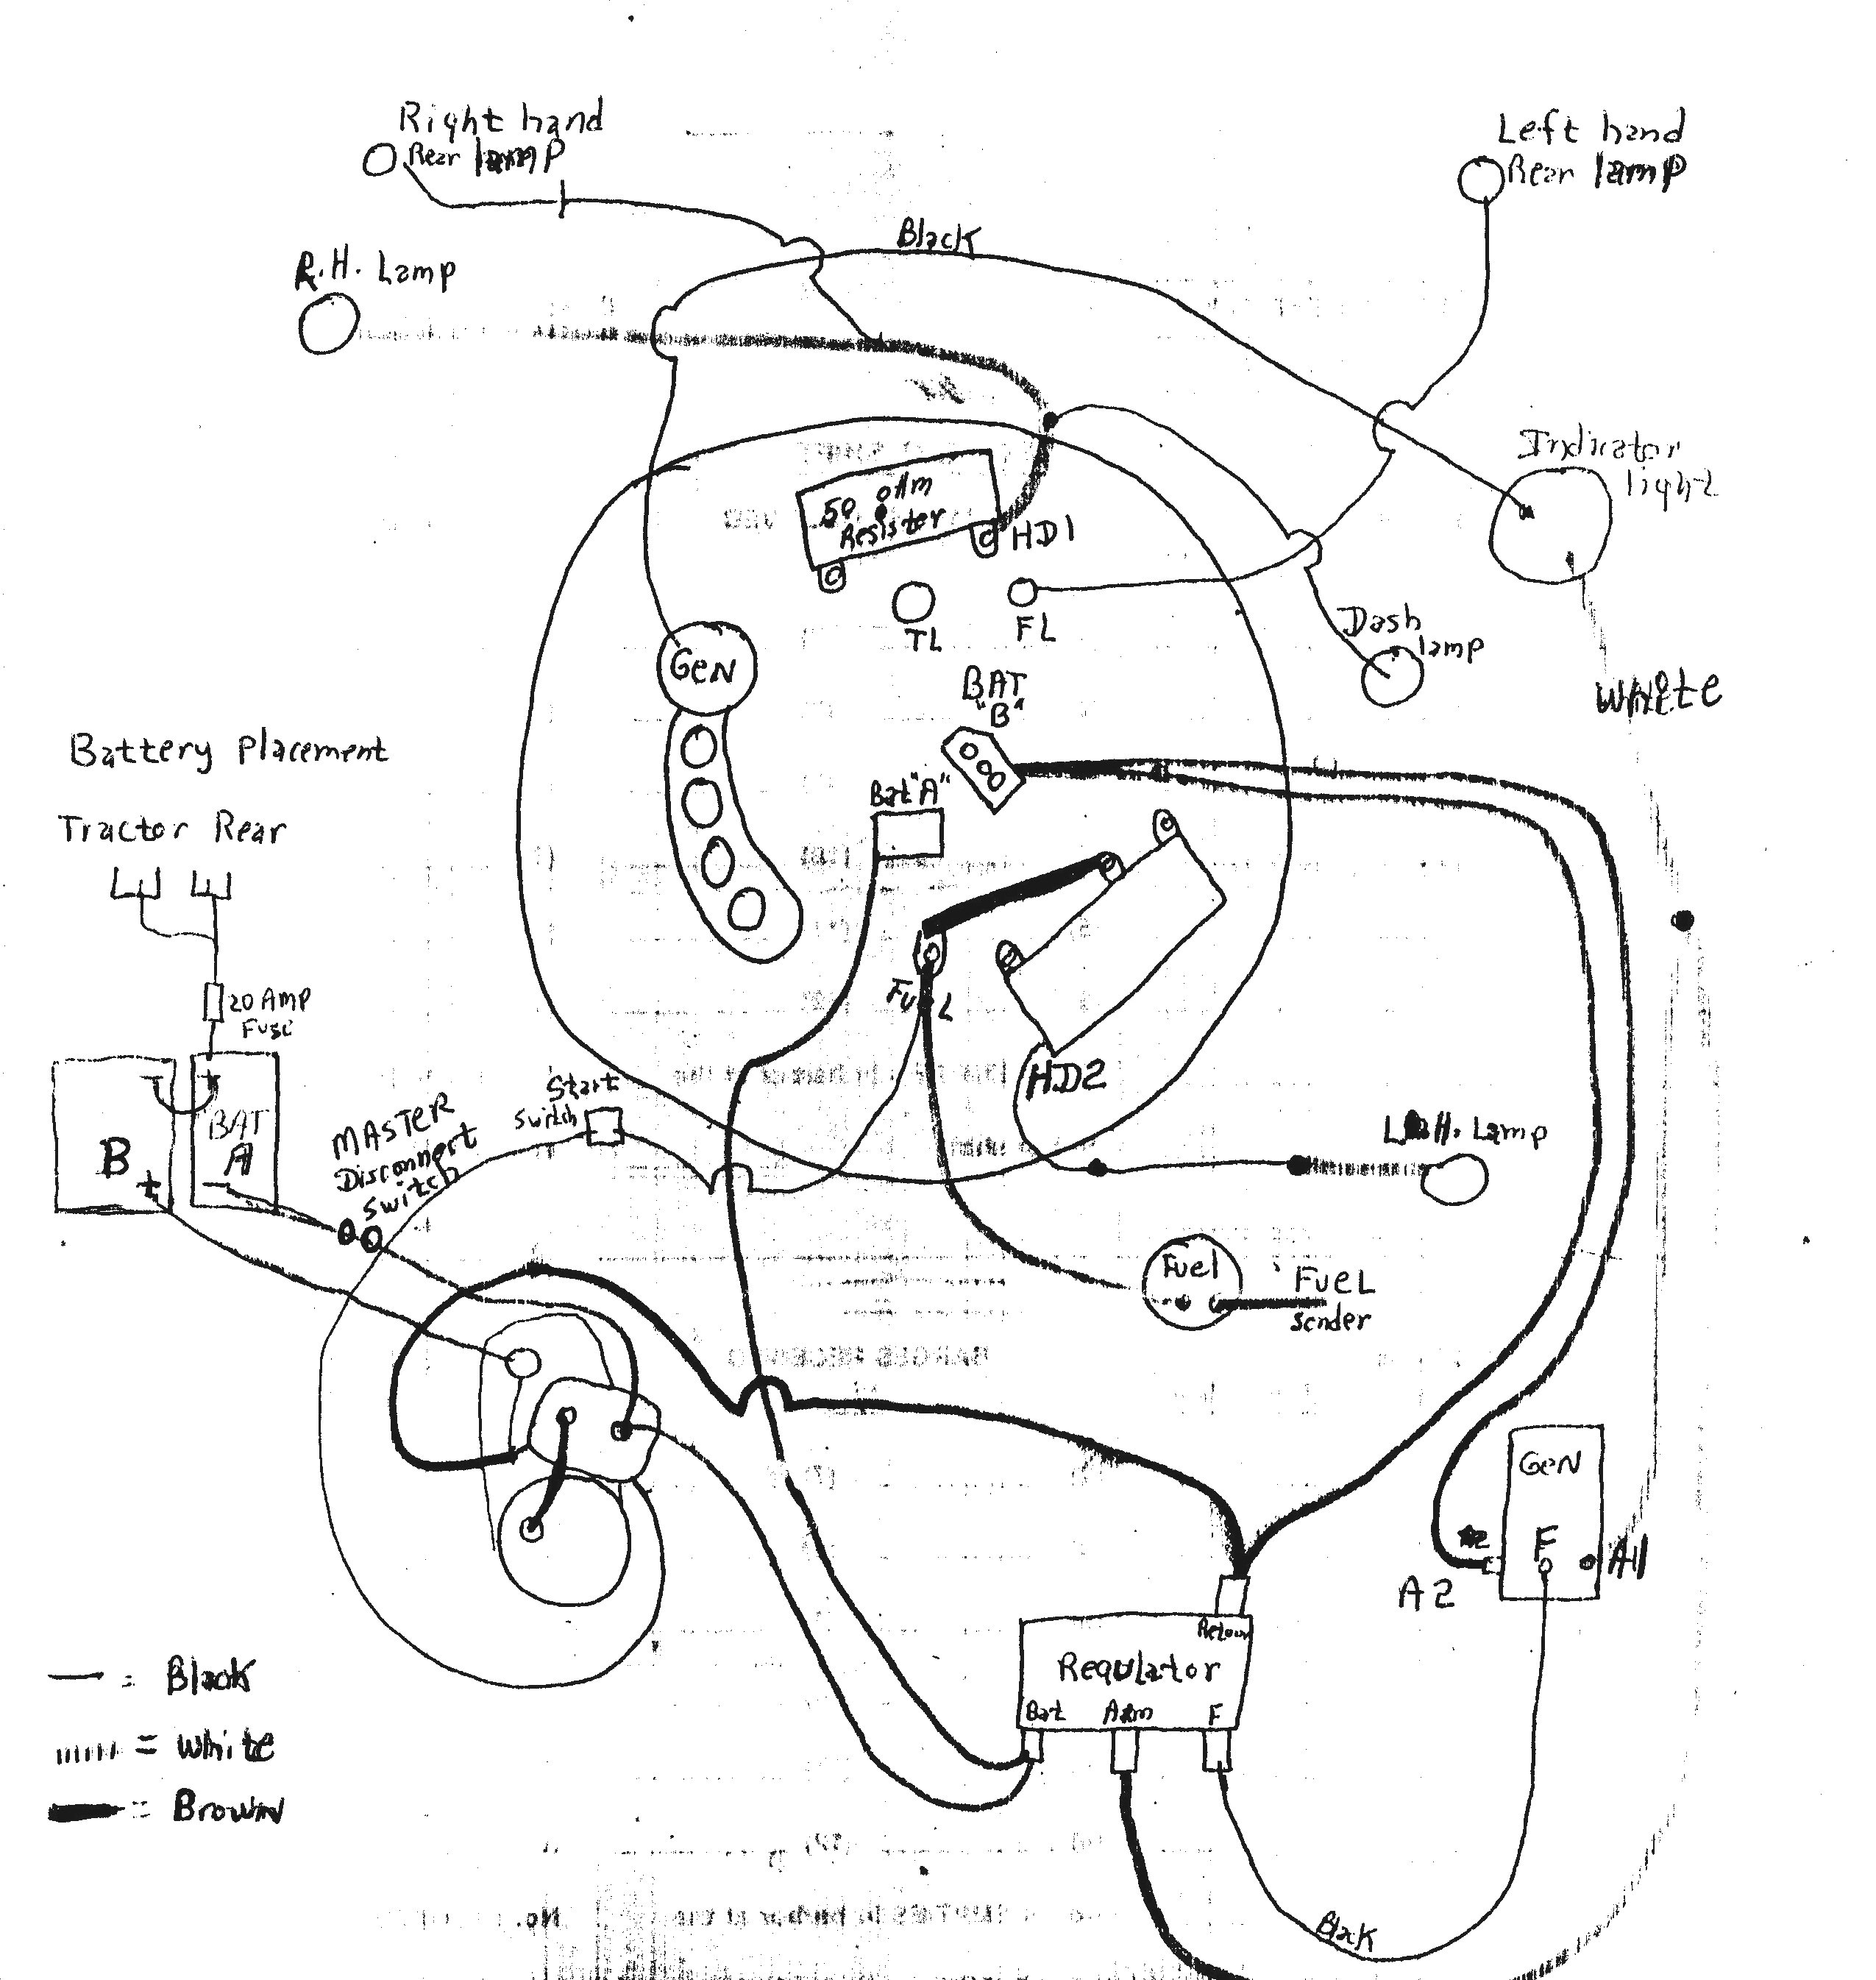 24volt_wiring_diagram jd a wiring diagram wiring diagram simonand john deere 3020 wiring diagram pdf at mifinder.co